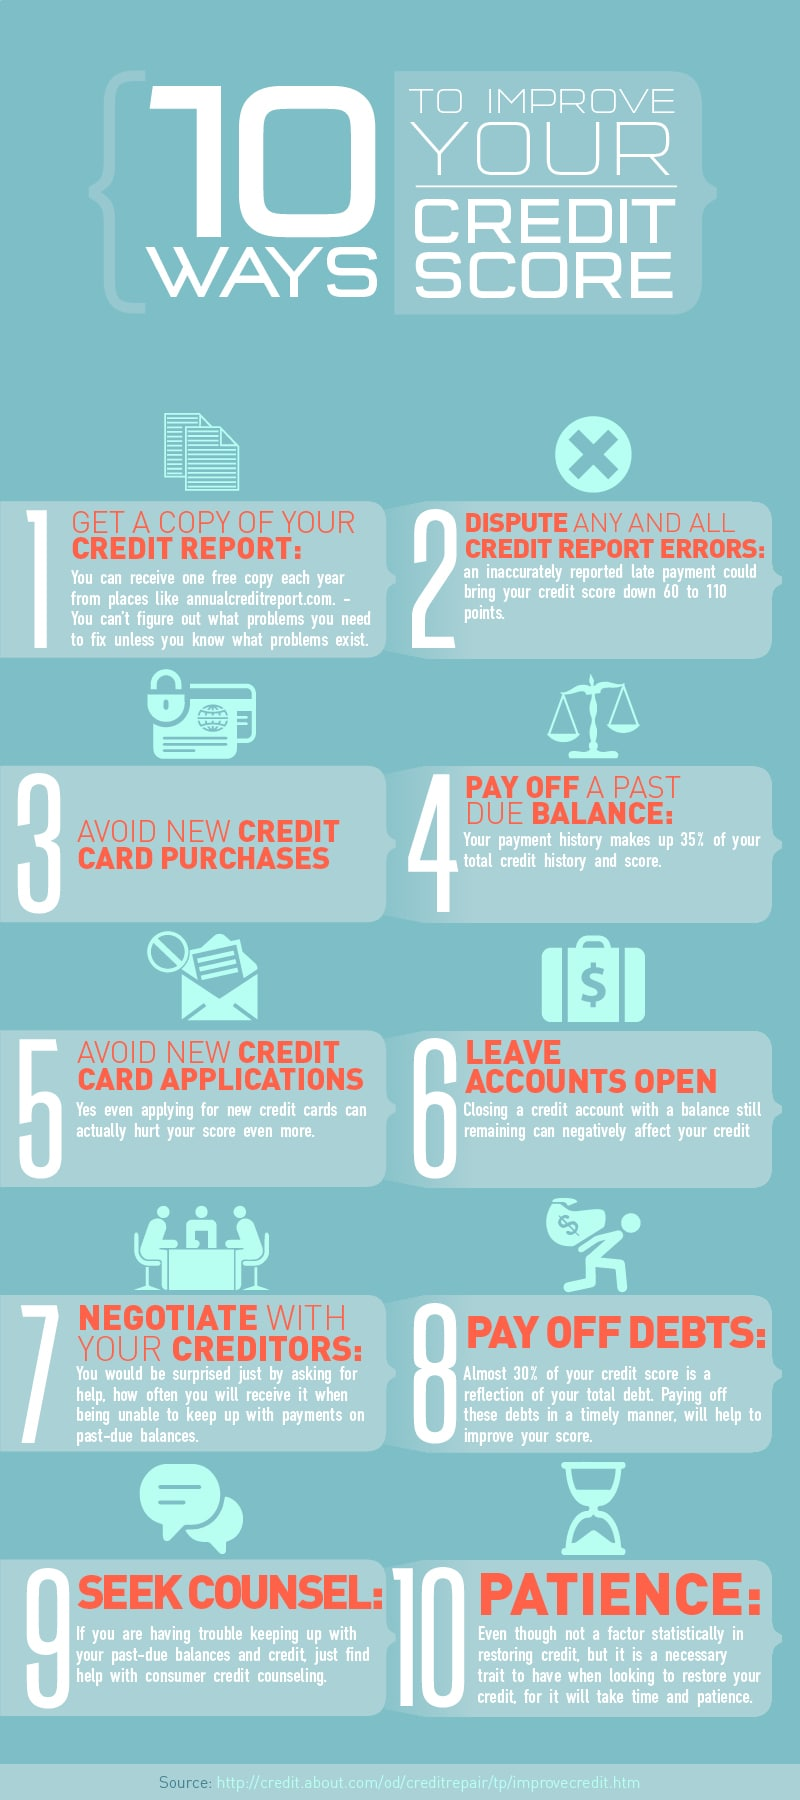 Kernersville Chrysler Dodge Jeep Ram >> How to Improve Your Credit Score NC   Kernersville Chrysler Dodge Jeep RAM's Guide to Auto ...